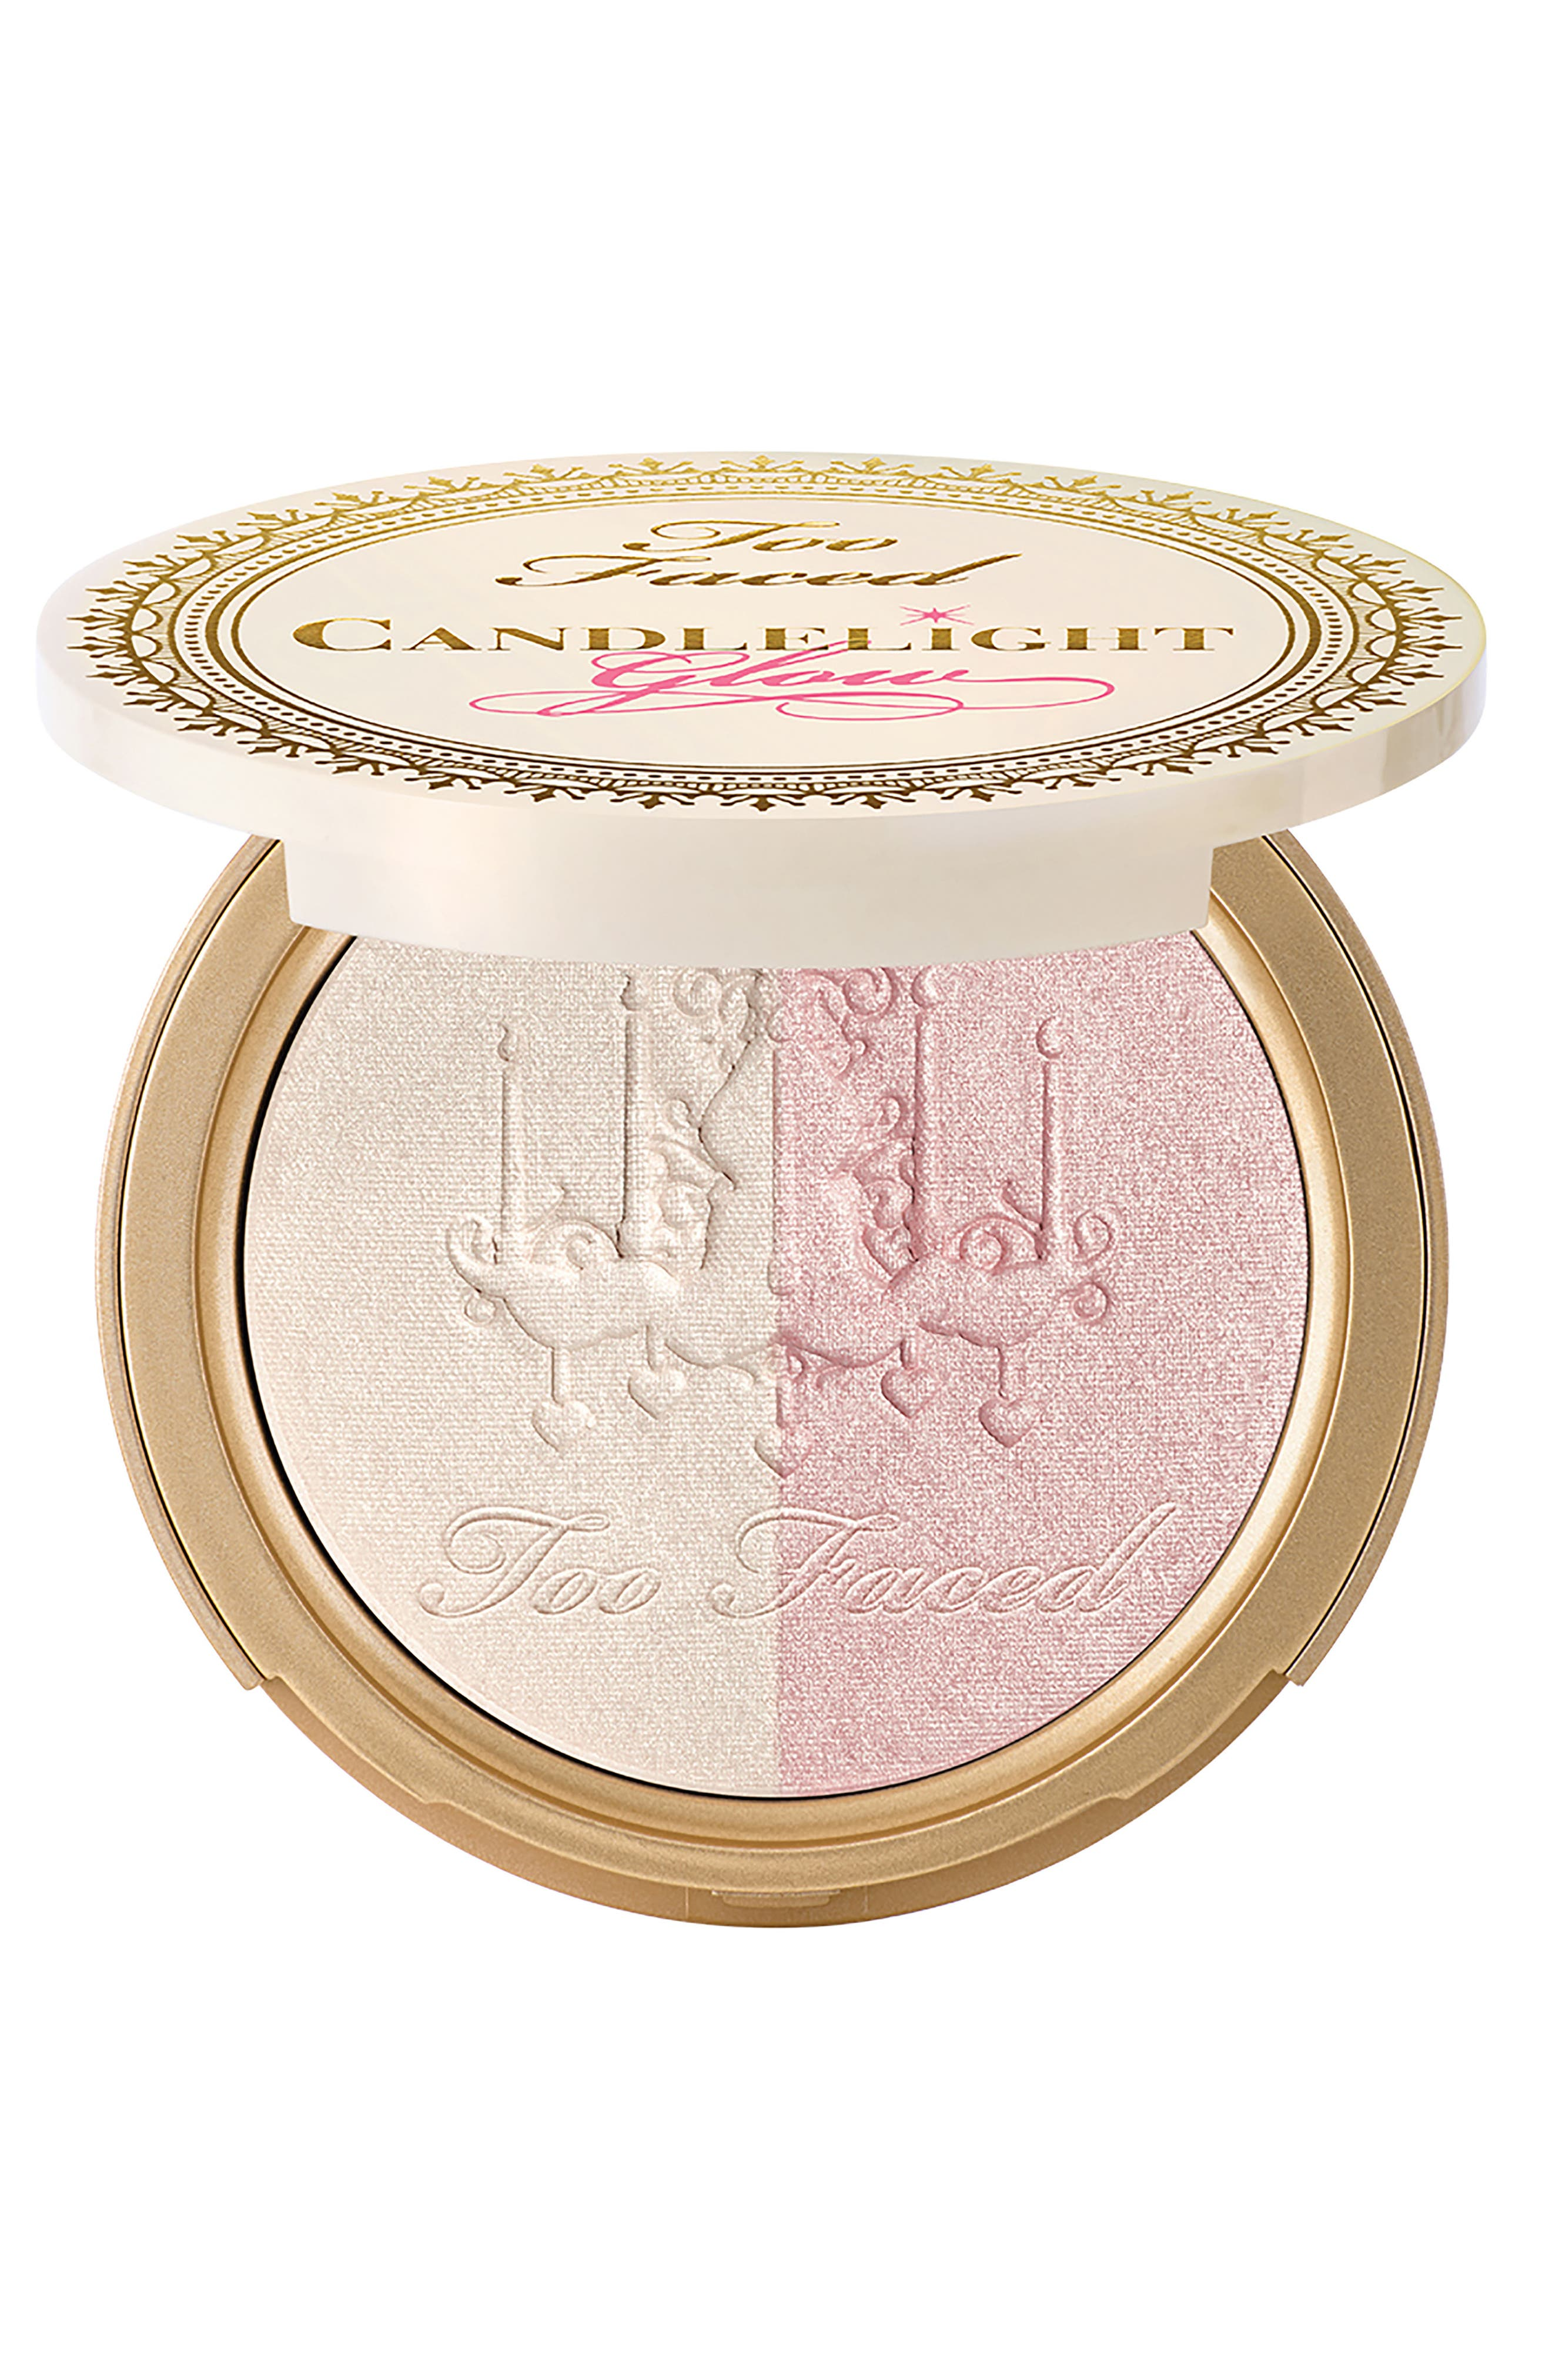 Alternate Image 1 Selected - Too Faced Candlelight Glow Powder